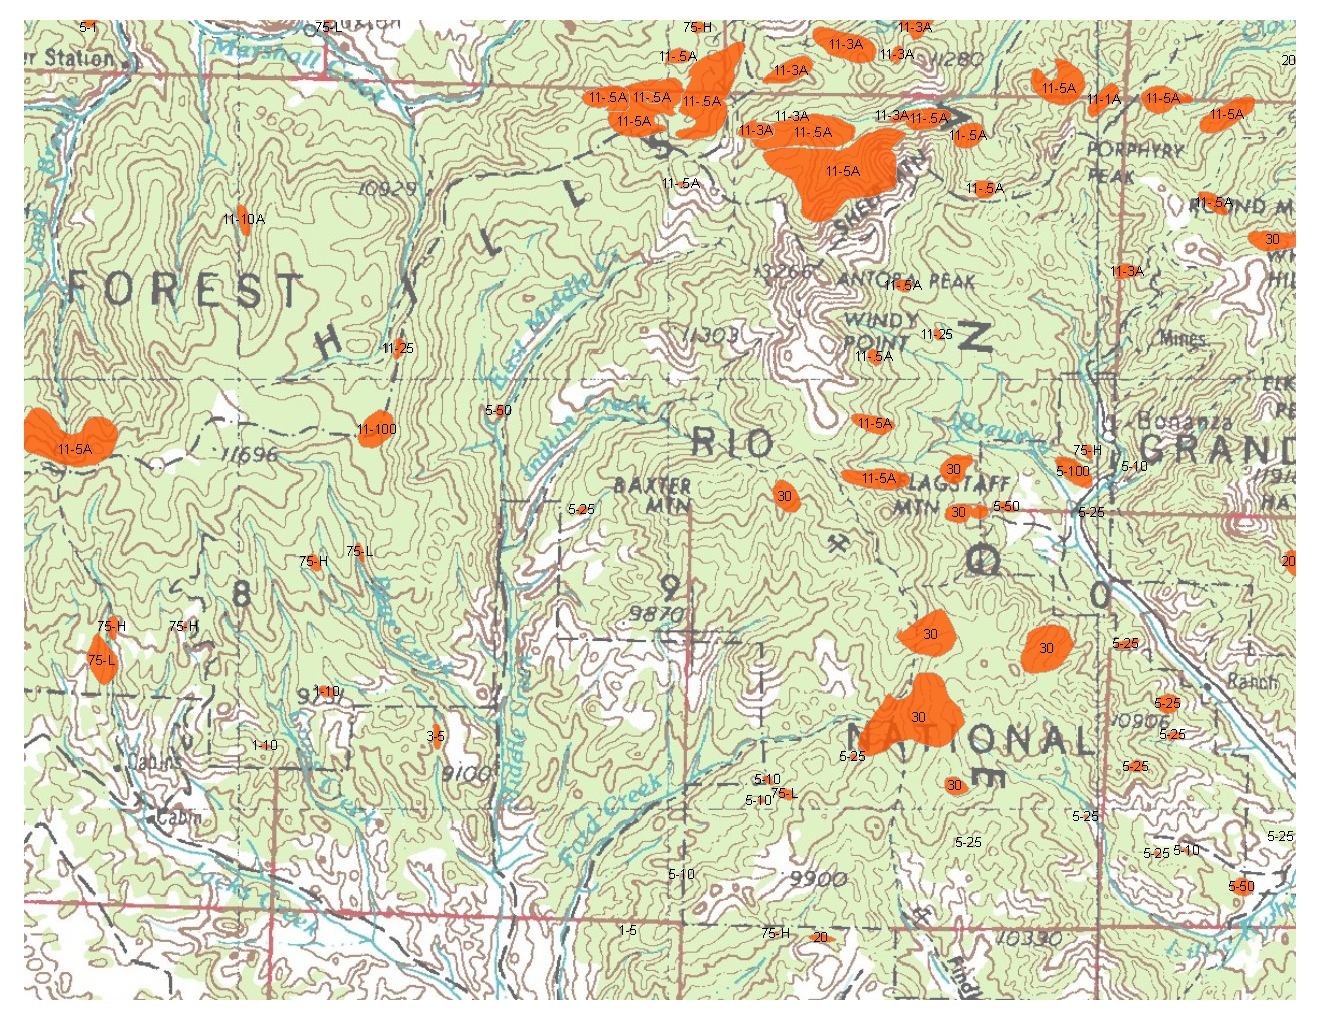 Region Forest Grassland Health - Us forest service topographic maps